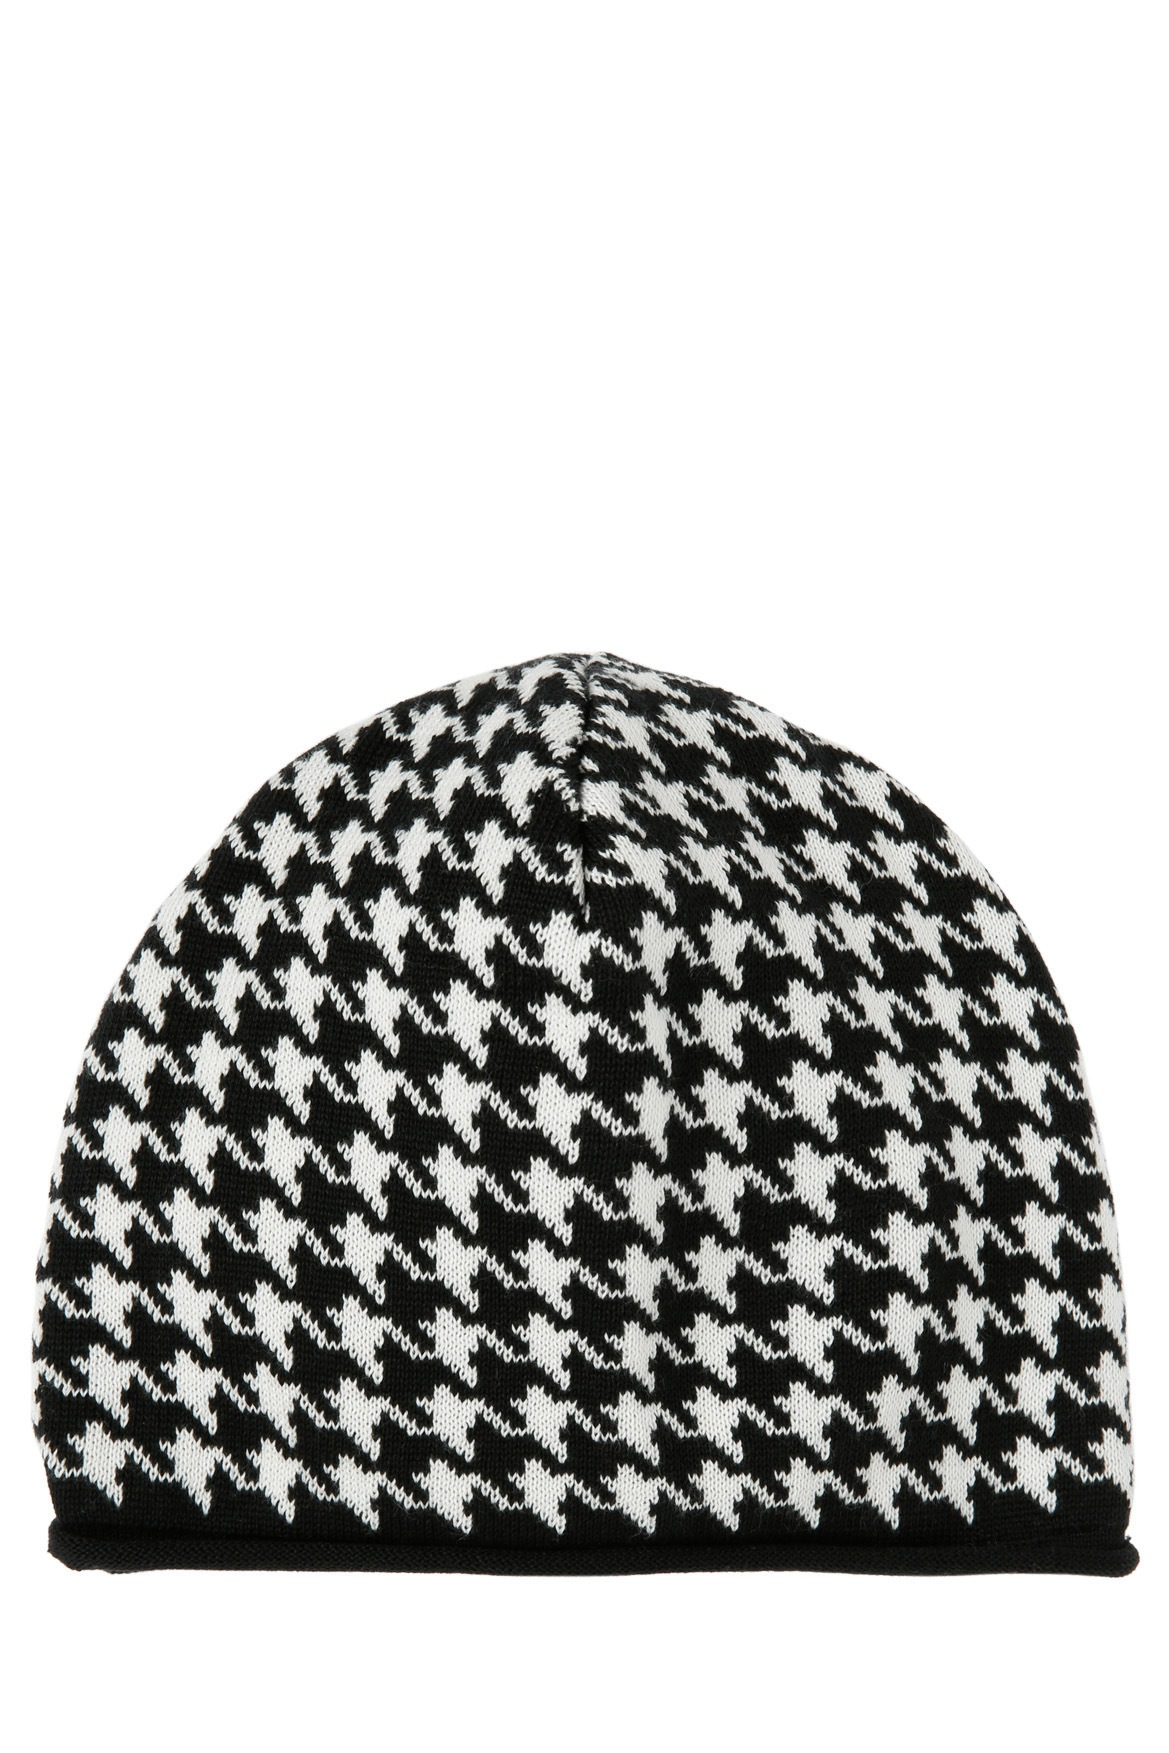 Piper | Houndstooth Black/White Knitted Beanie | Myer Online